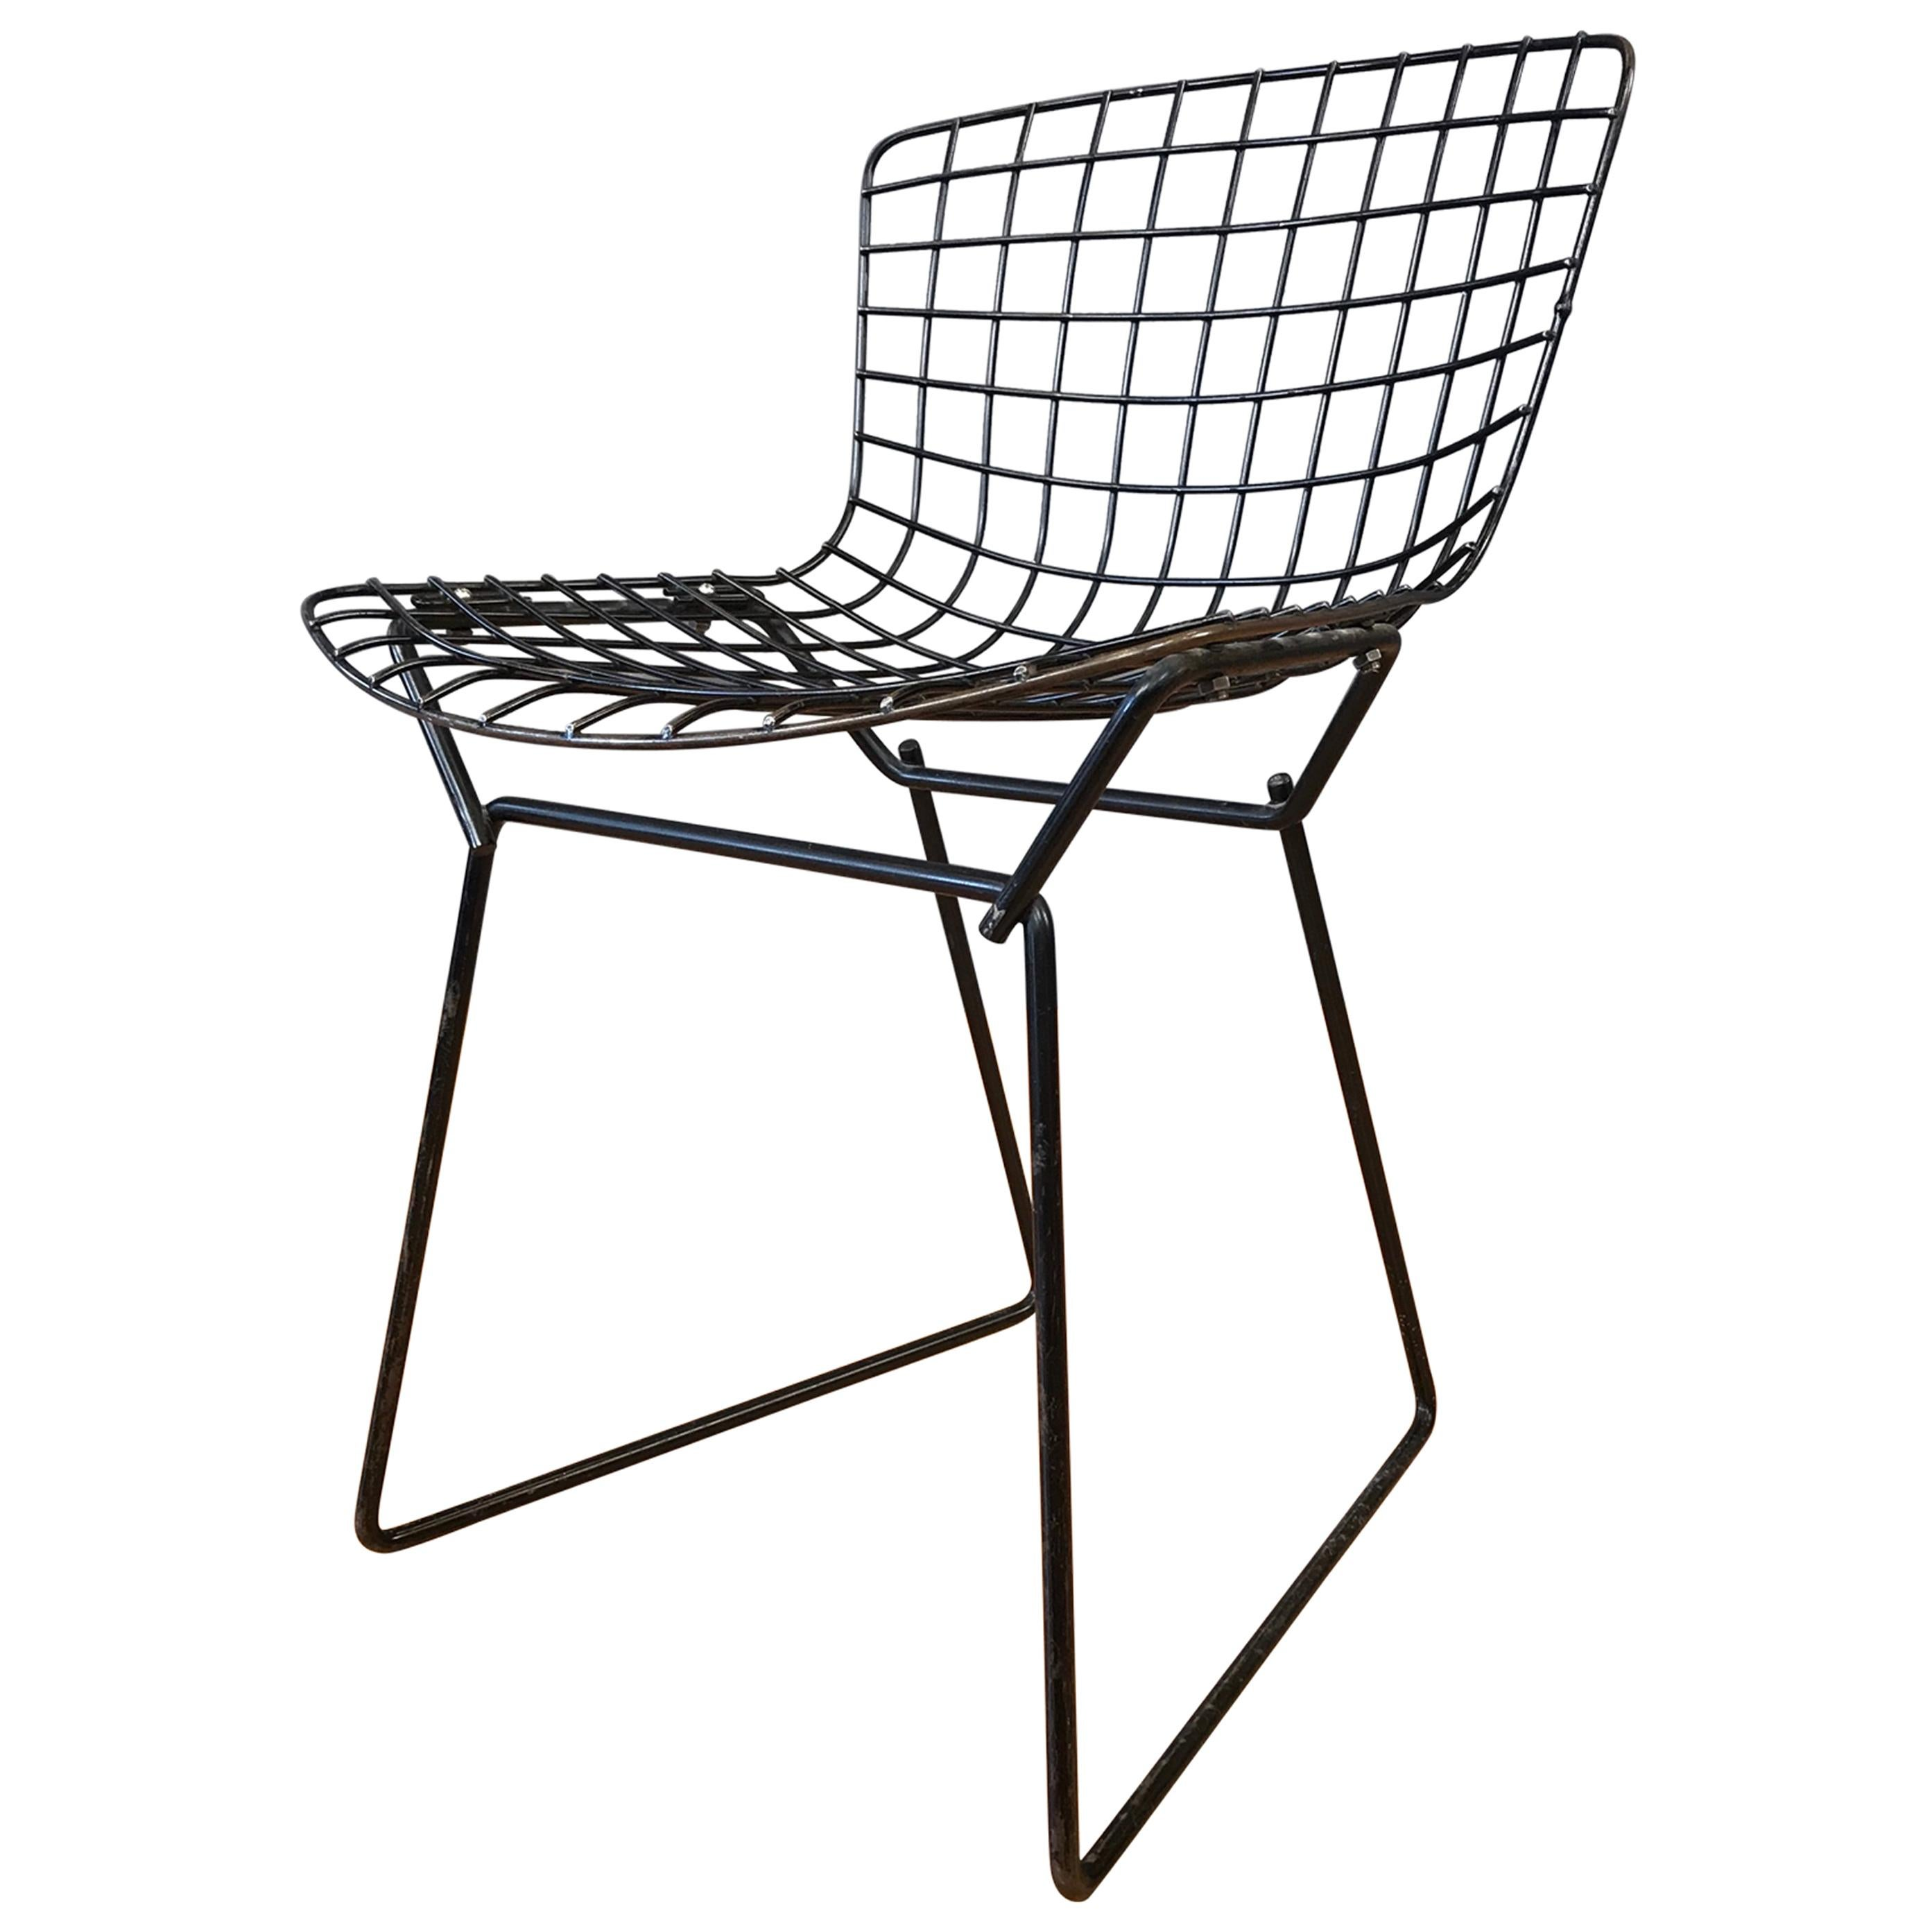 harry bertoia chairs 54 for sale at 1stdibs Hippie Interior Decor